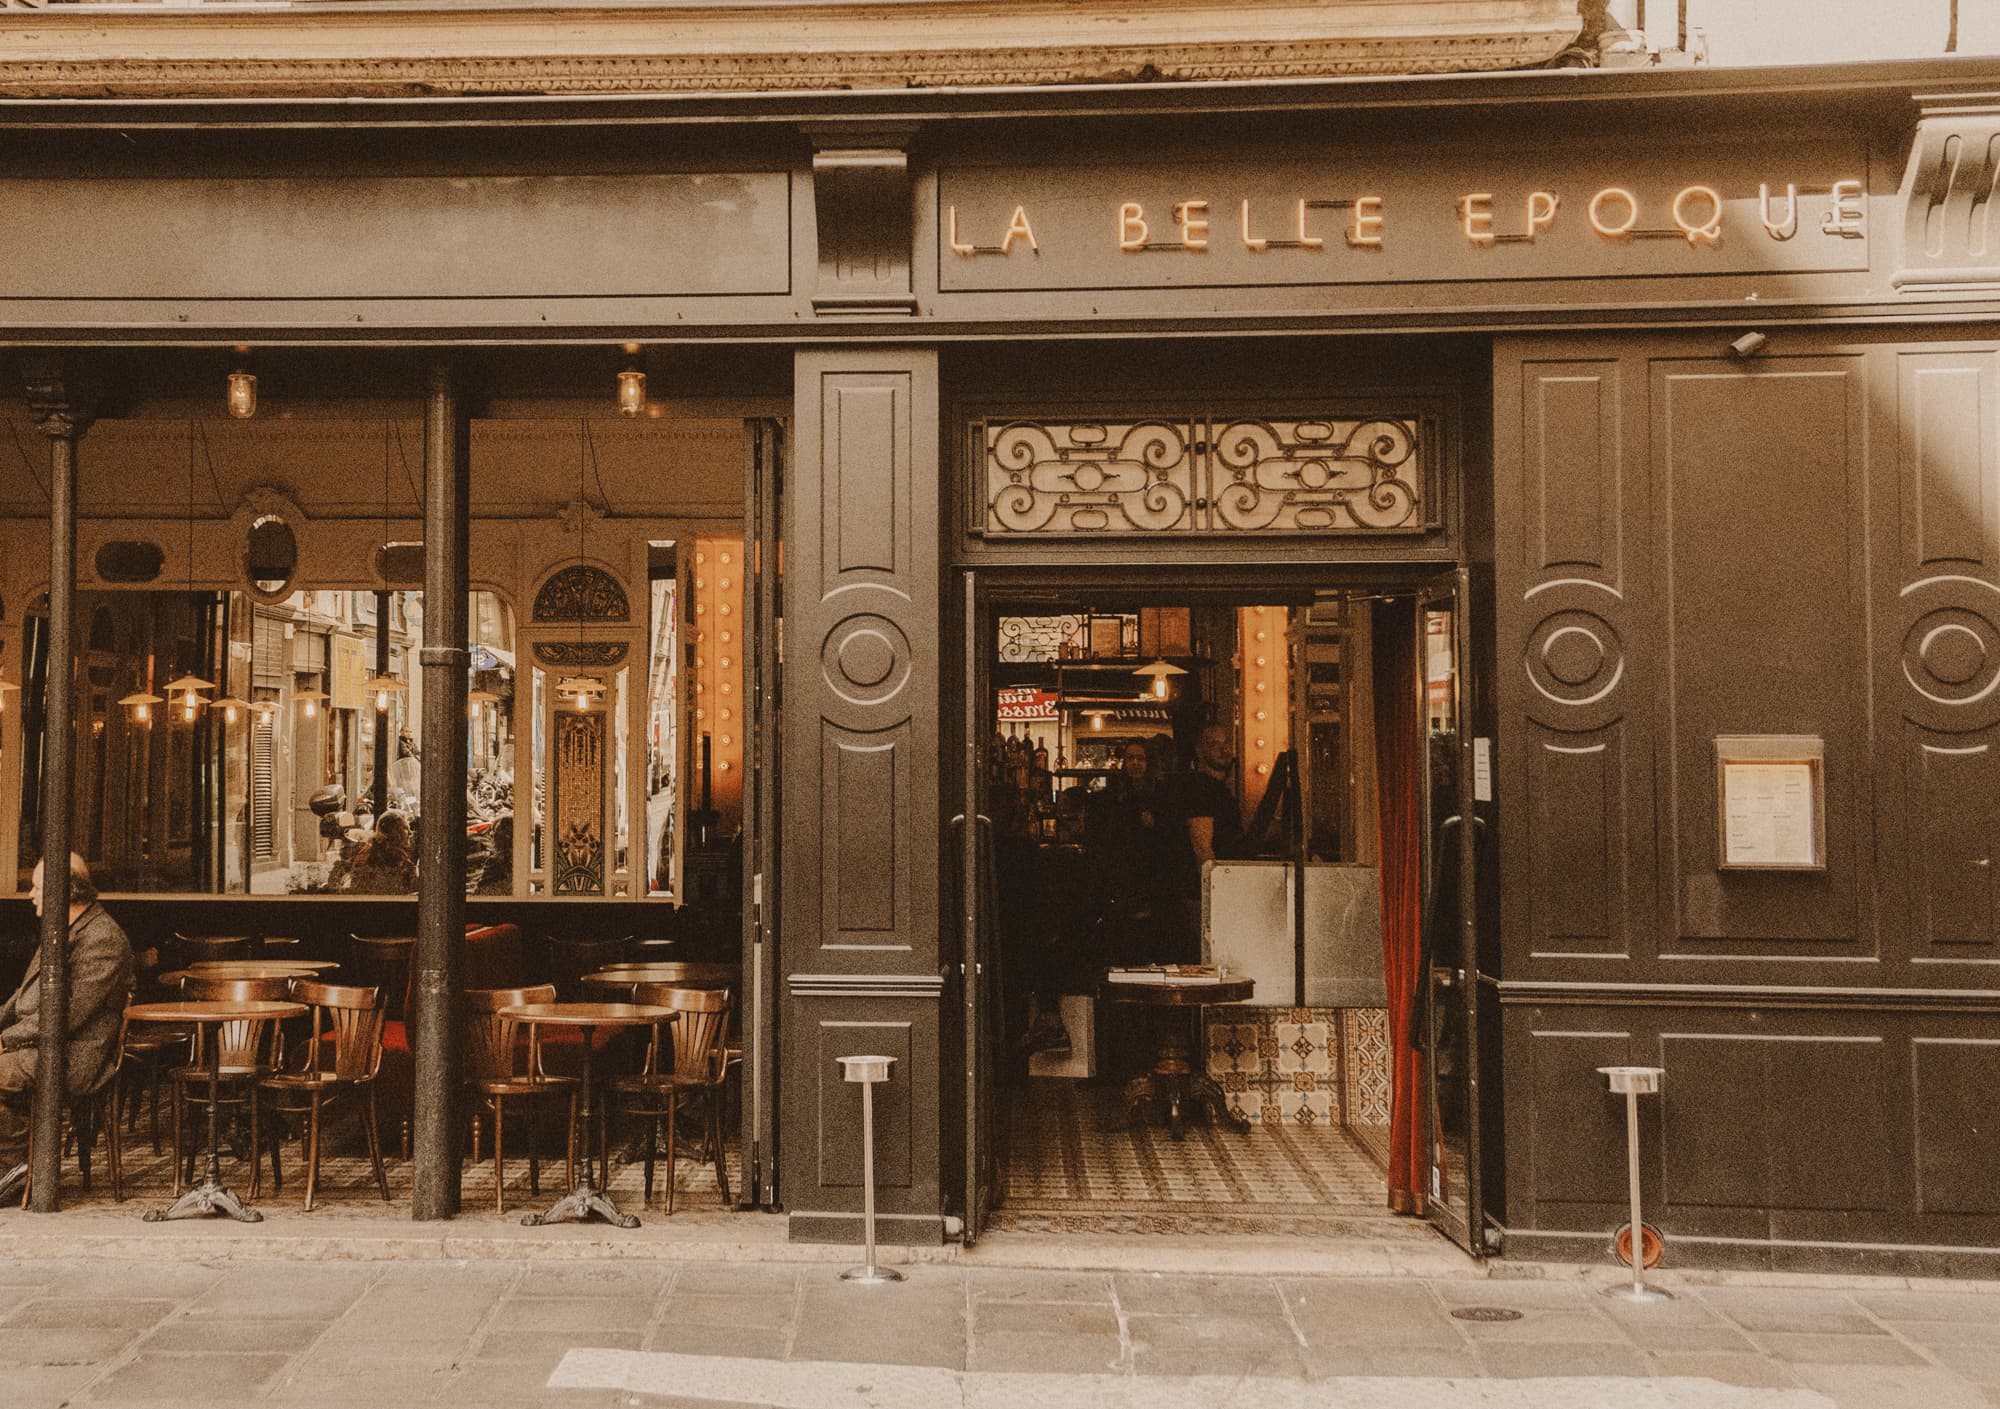 la belle époque restaurant, paris